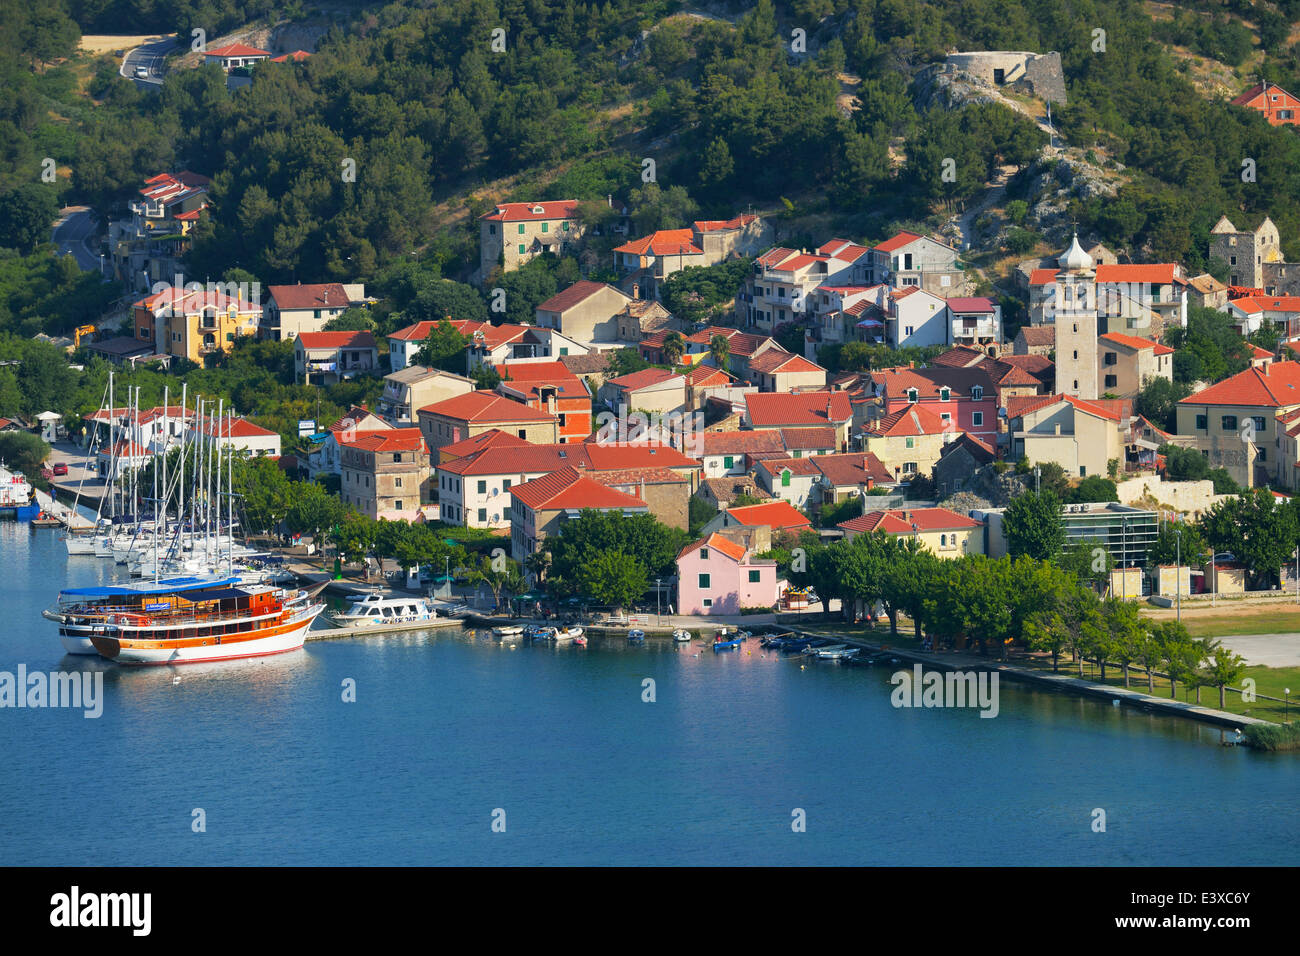 Townscape with sailing ship in the foreground, River Krka, Skradin, Dalmatia, Croatia - Stock Image